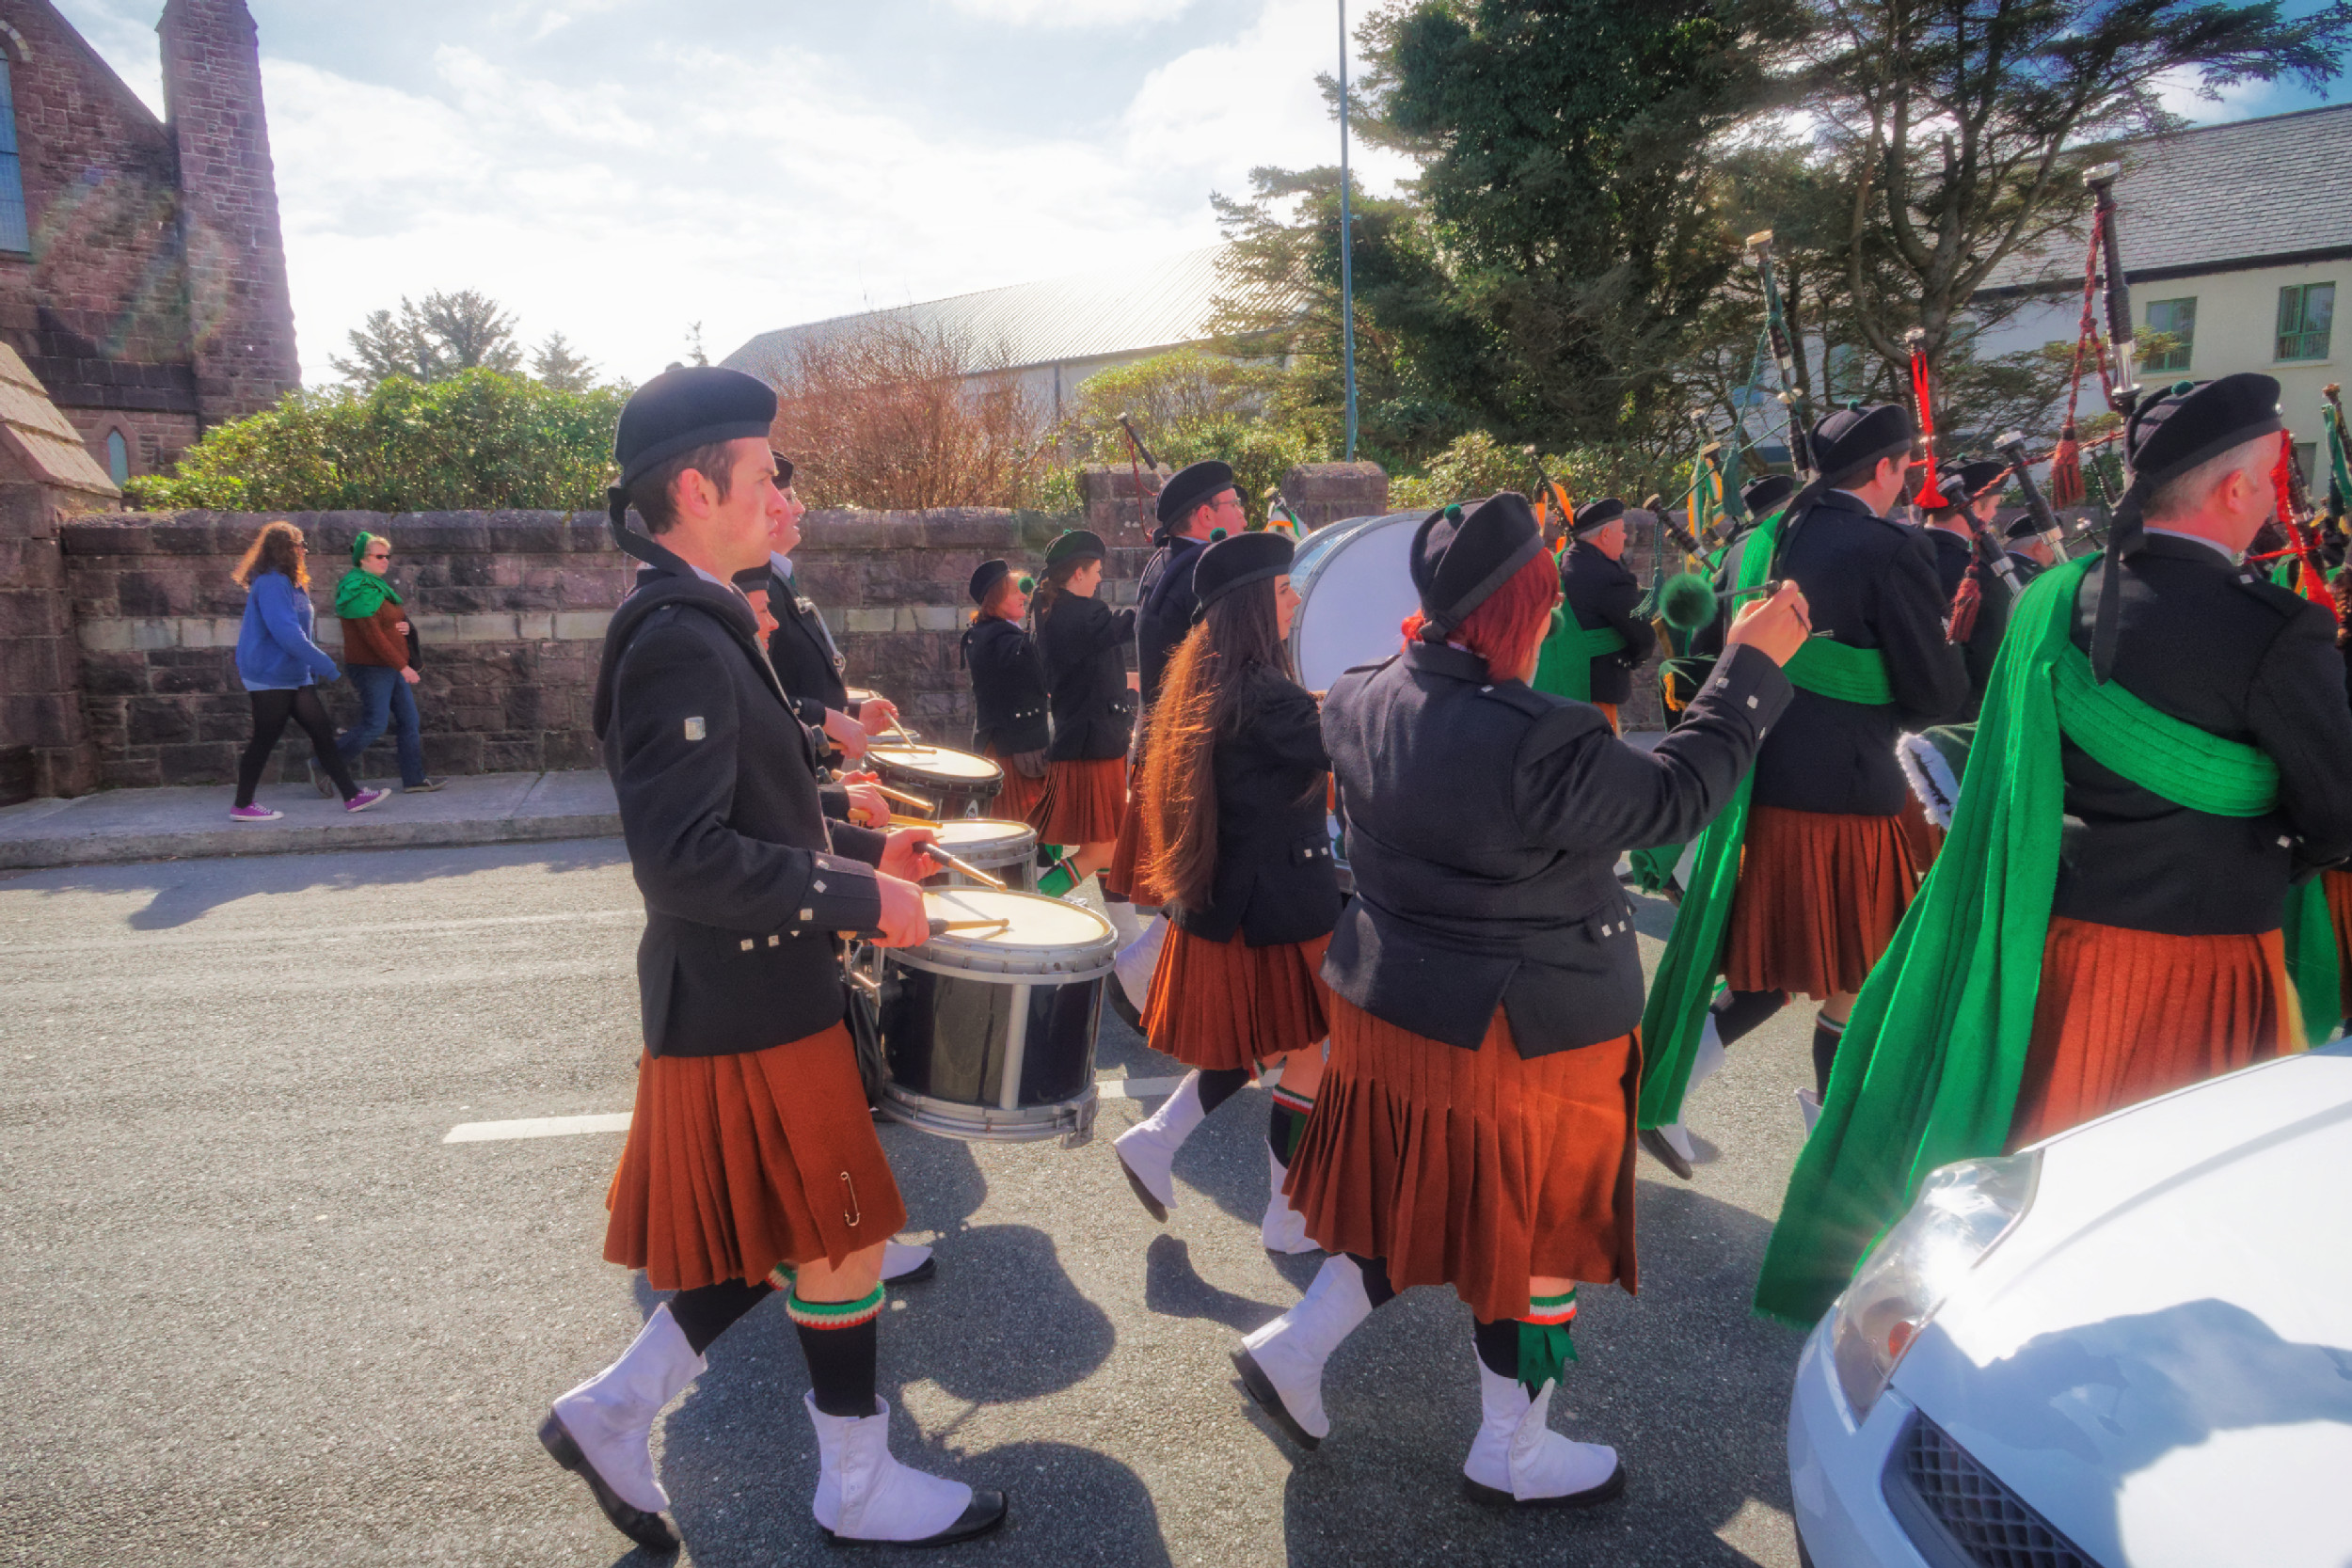 20160320131105-ie-achill-sound_parade-_DxO_13in_DxO96